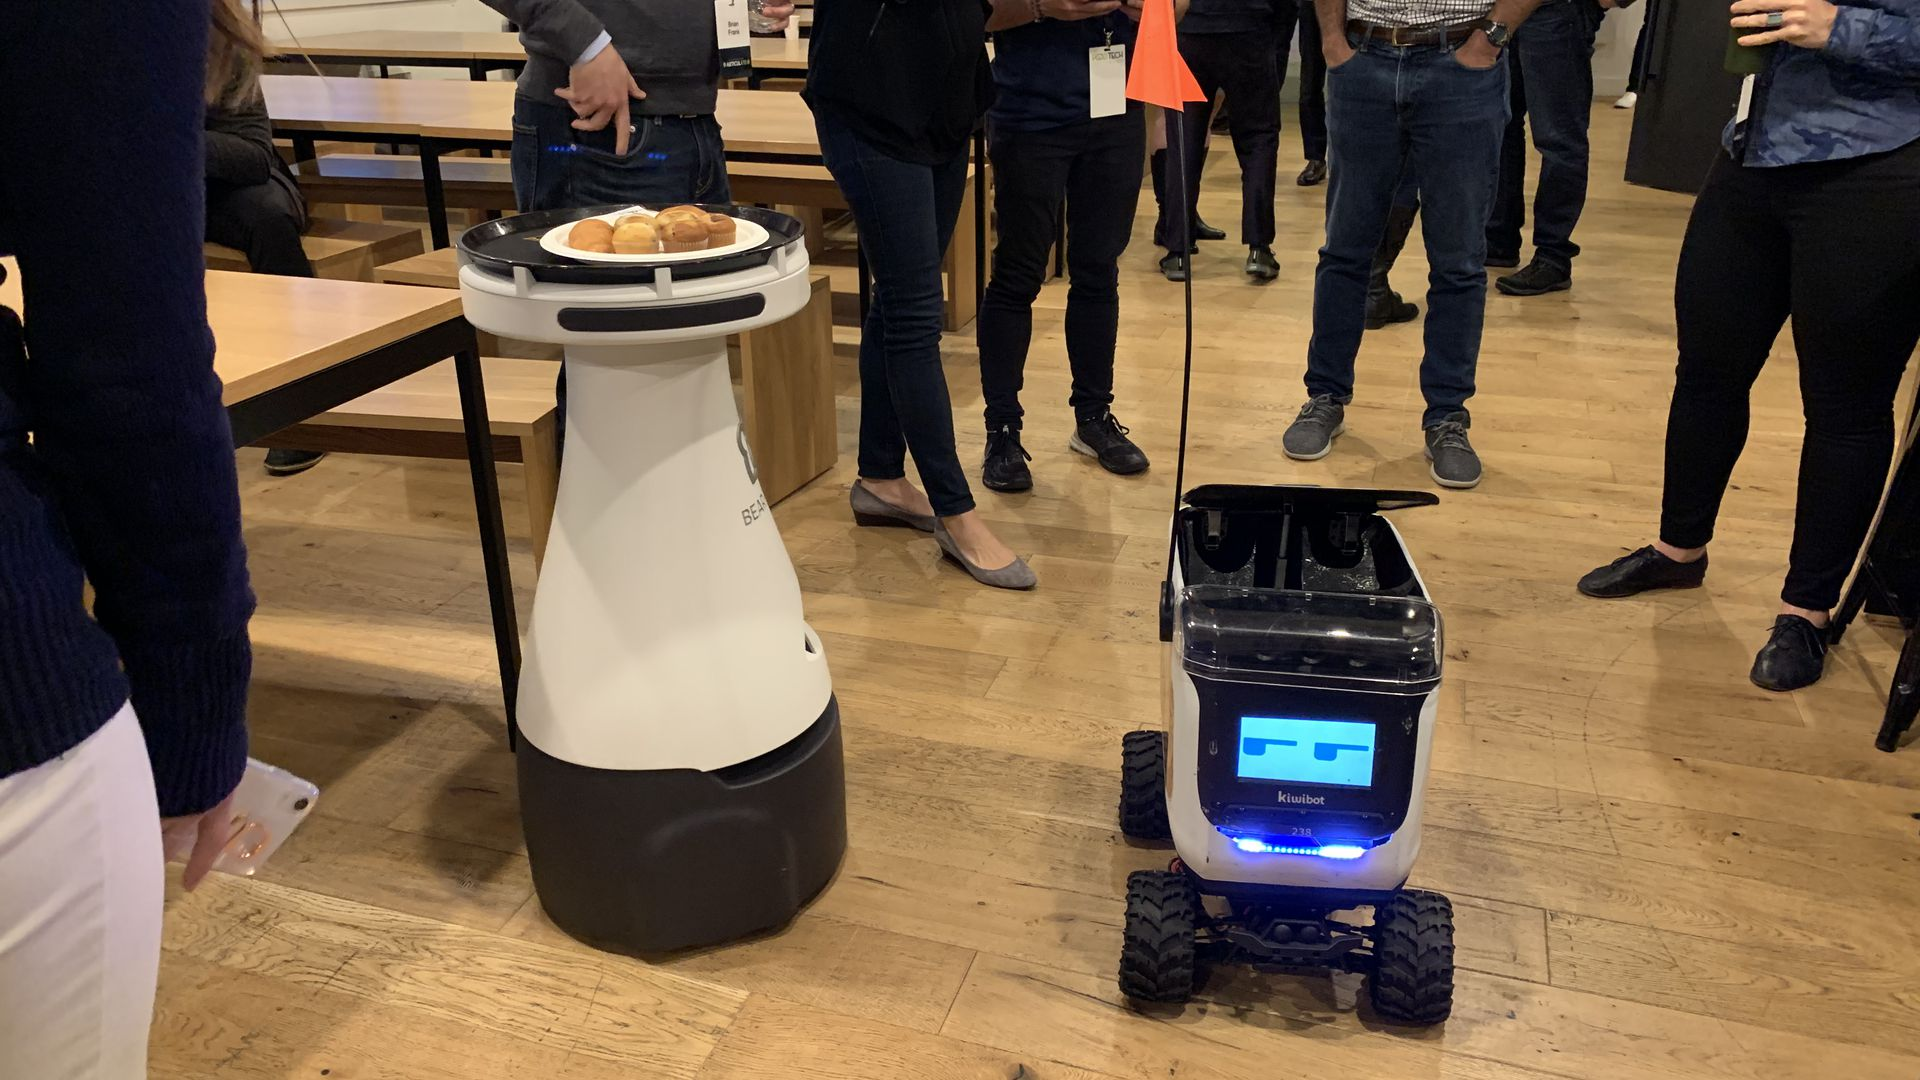 Robot startups are making a play for the U.S. food industry